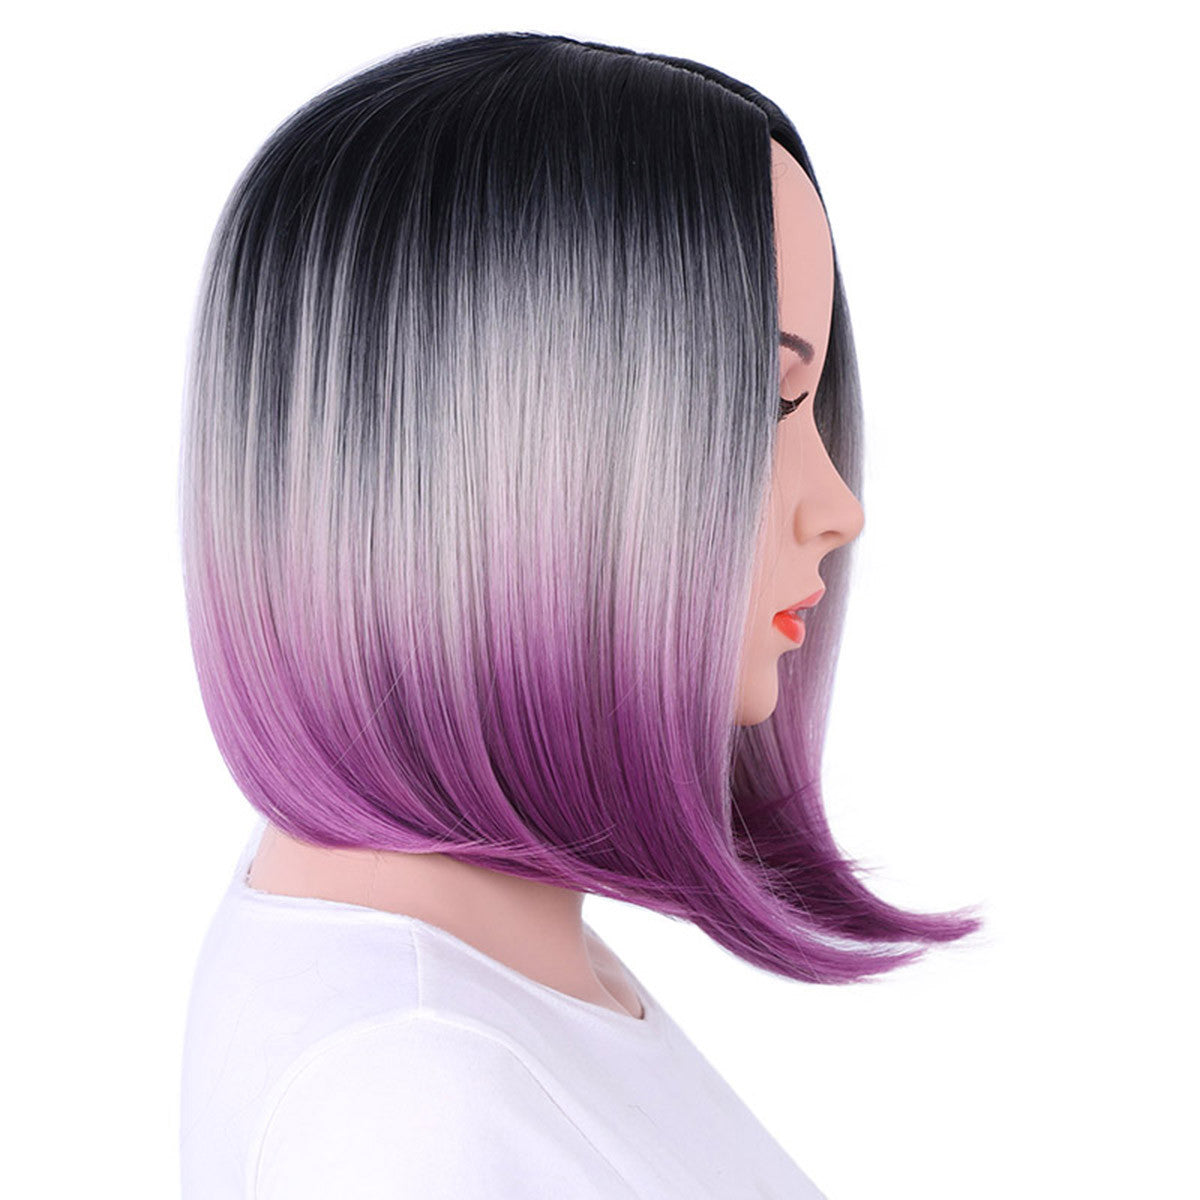 Bob Wig Gradient Color Cosplay Synthetic Hair Wig Short Straight Wigs Lace High Temperature Bob Wig - Jeybeauty